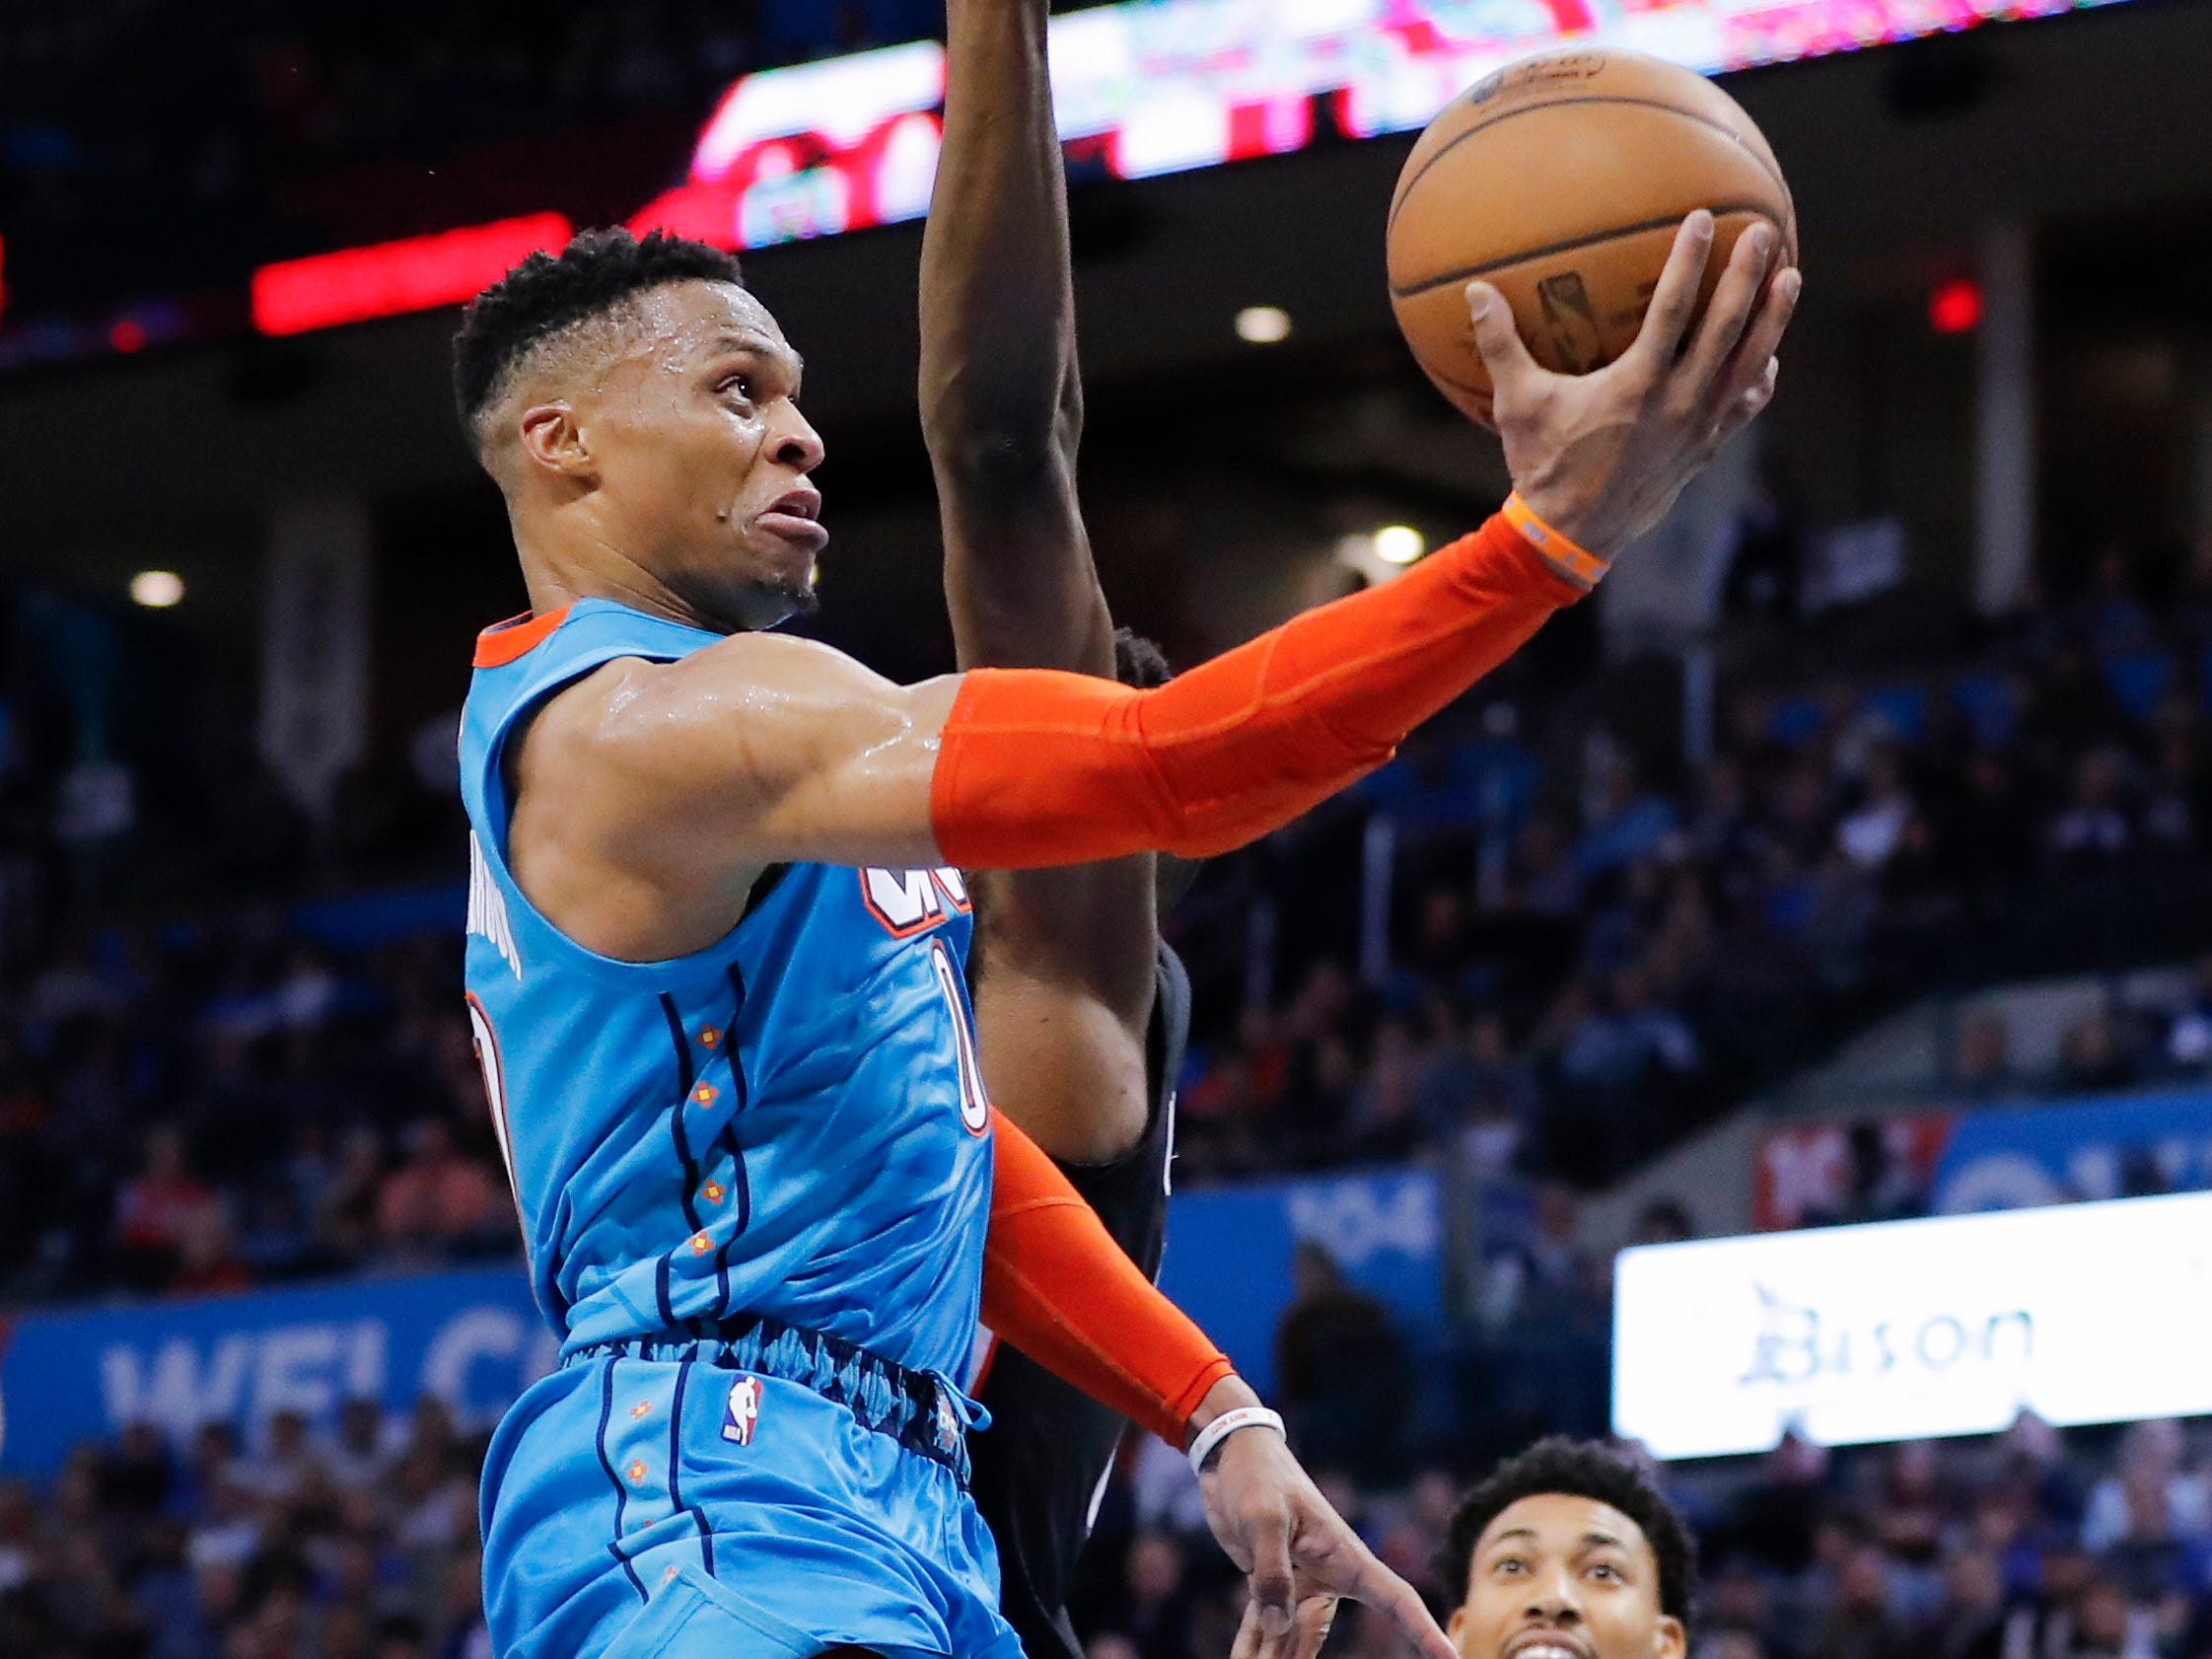 46. Russell Westbrook, Thunder (Jan. 6): 22 points, 15 rebounds, 13 assists in 116-98 loss to Wizards (12th of season).